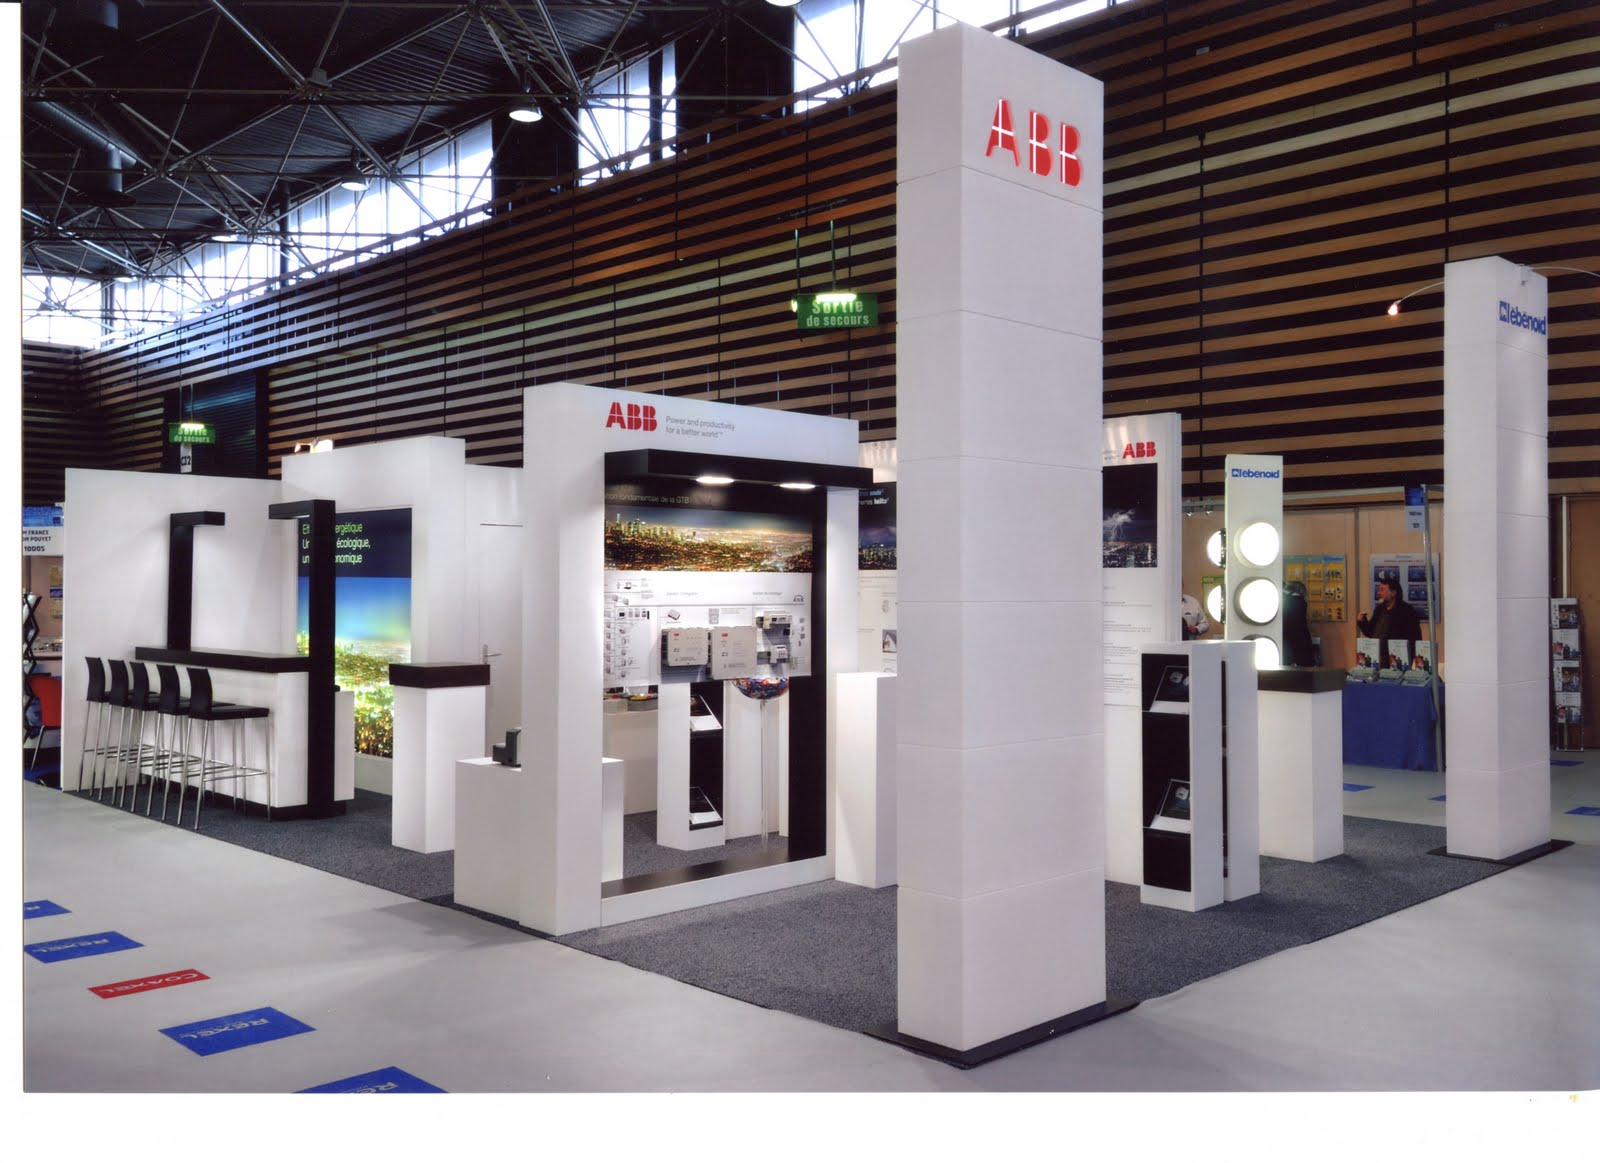 Design de l 39 v nement abb salon enr eurexpo lyon for Salon eurexpo lyon